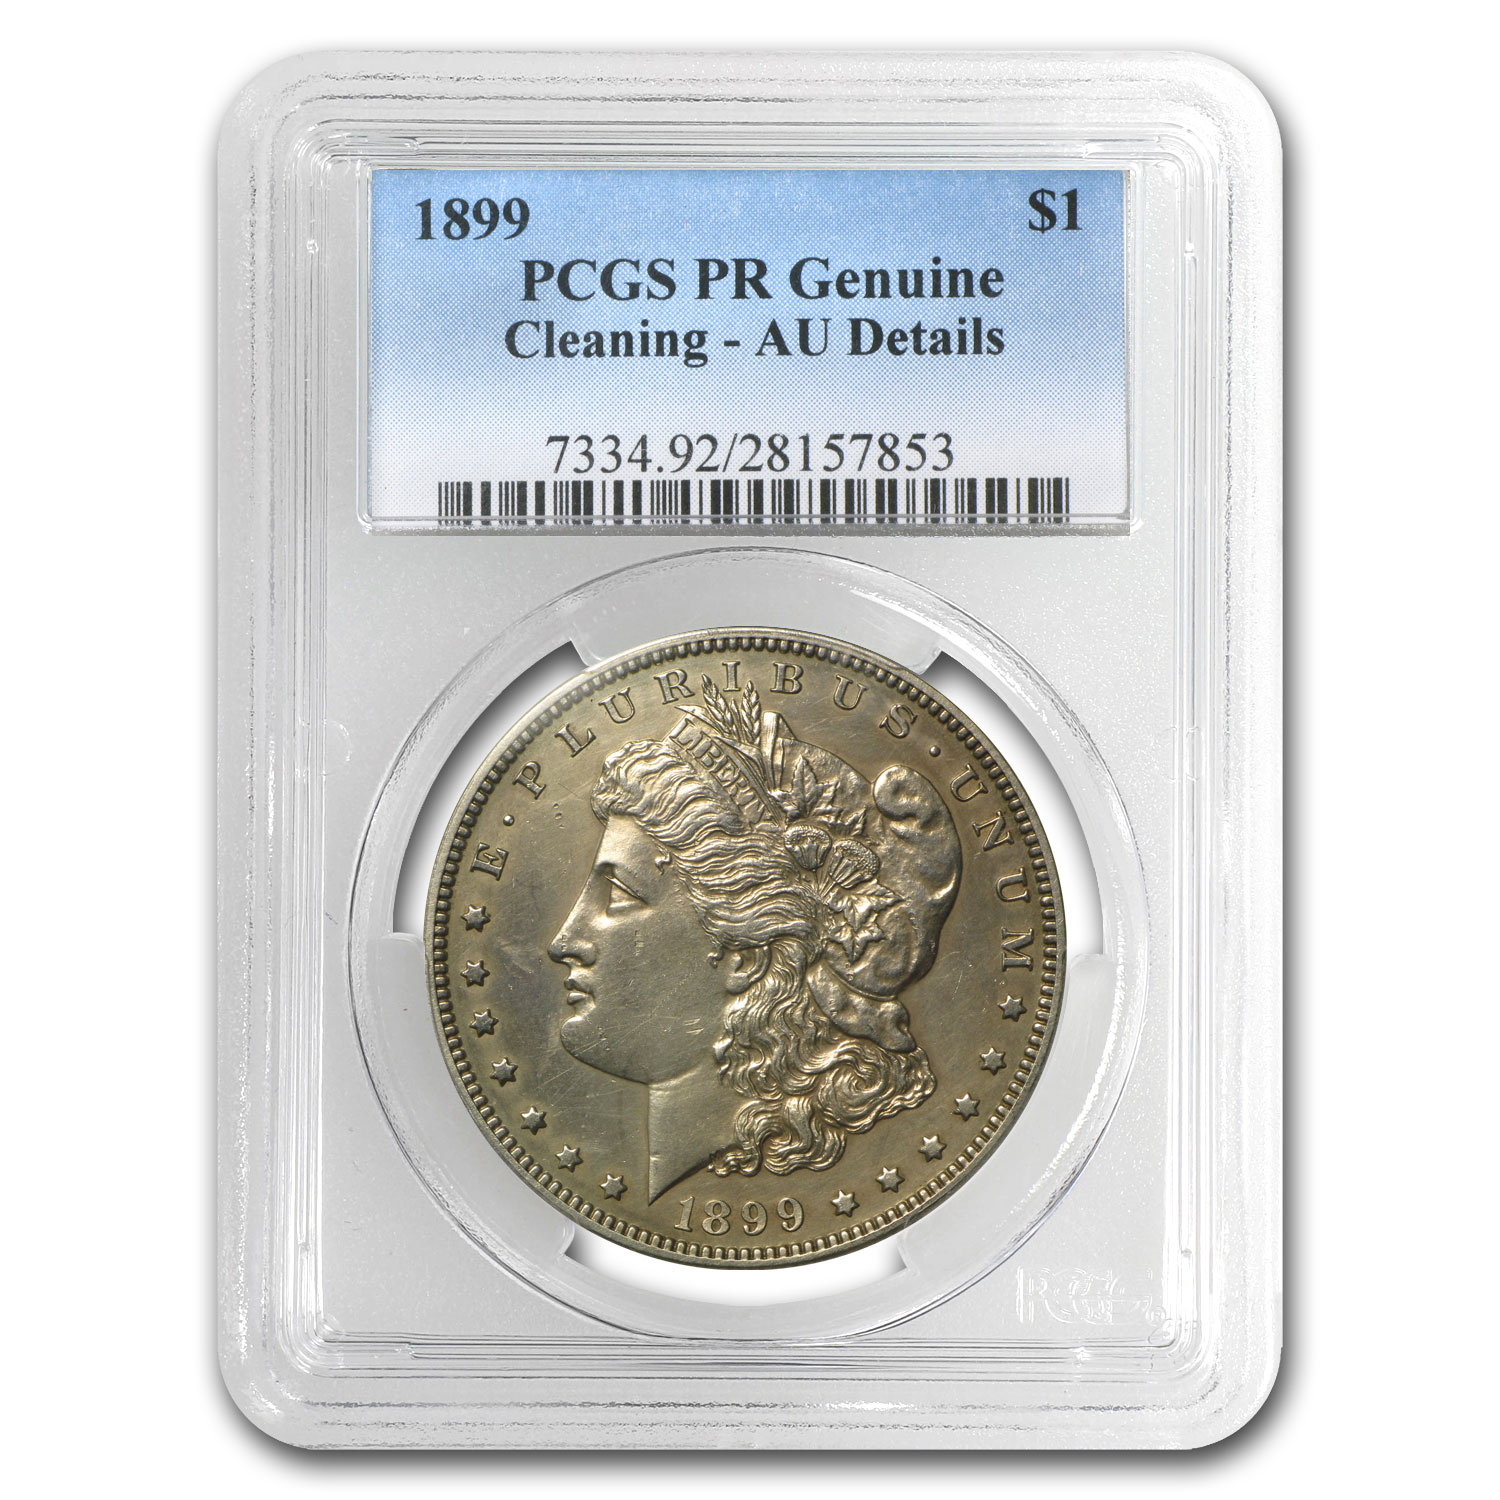 1899 Morgan Dollar Proof-58 Details PCGS (Cleaned)